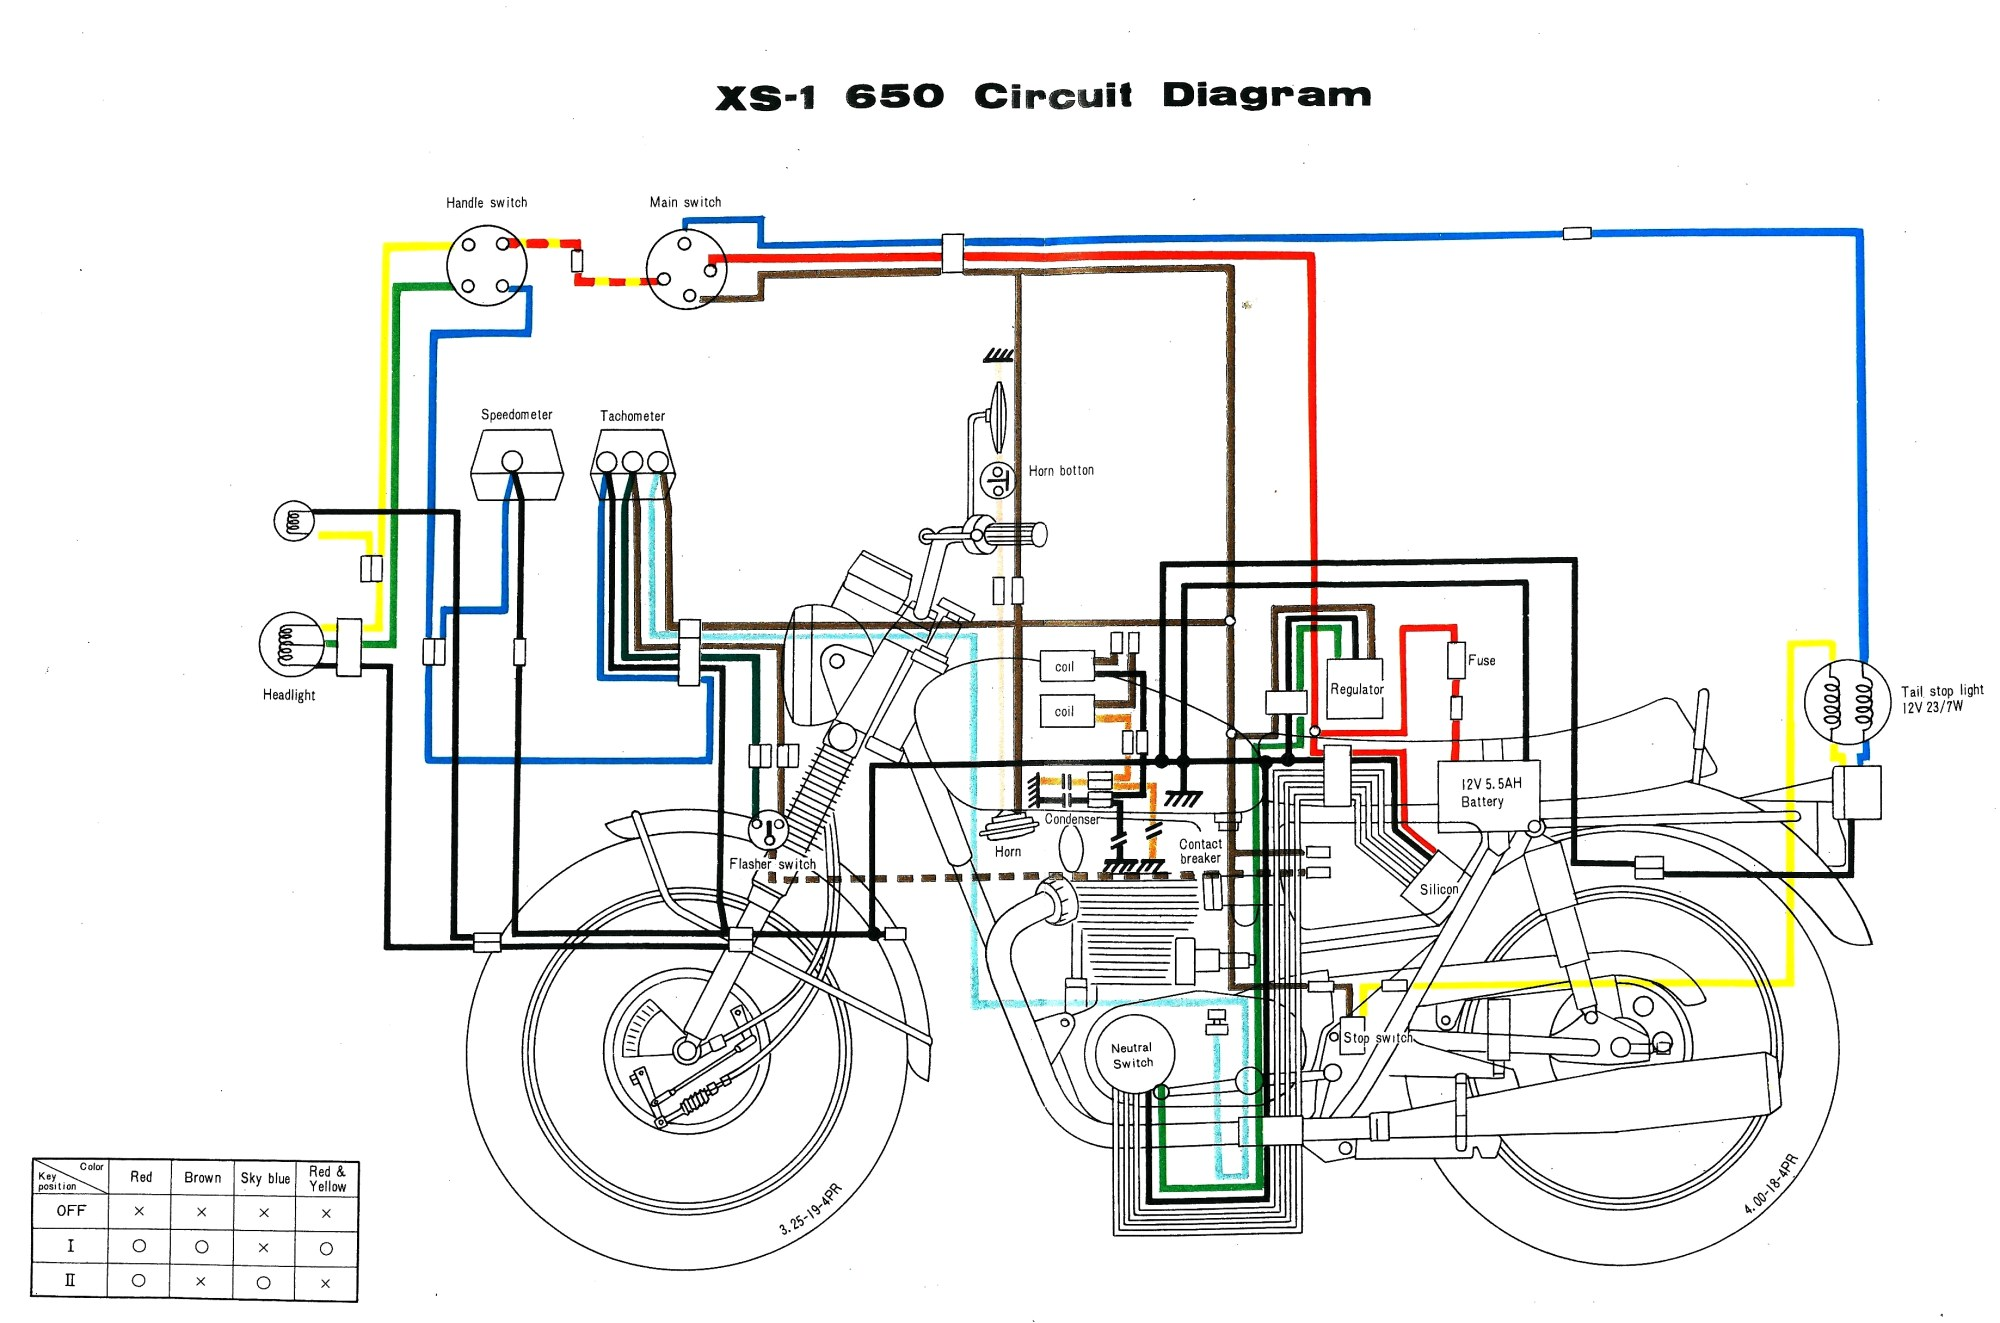 hight resolution of 1994 yamaha 650 motorcycle wiring diagram wiring diagrams long 1994 yamaha wr 250 wiring diagram